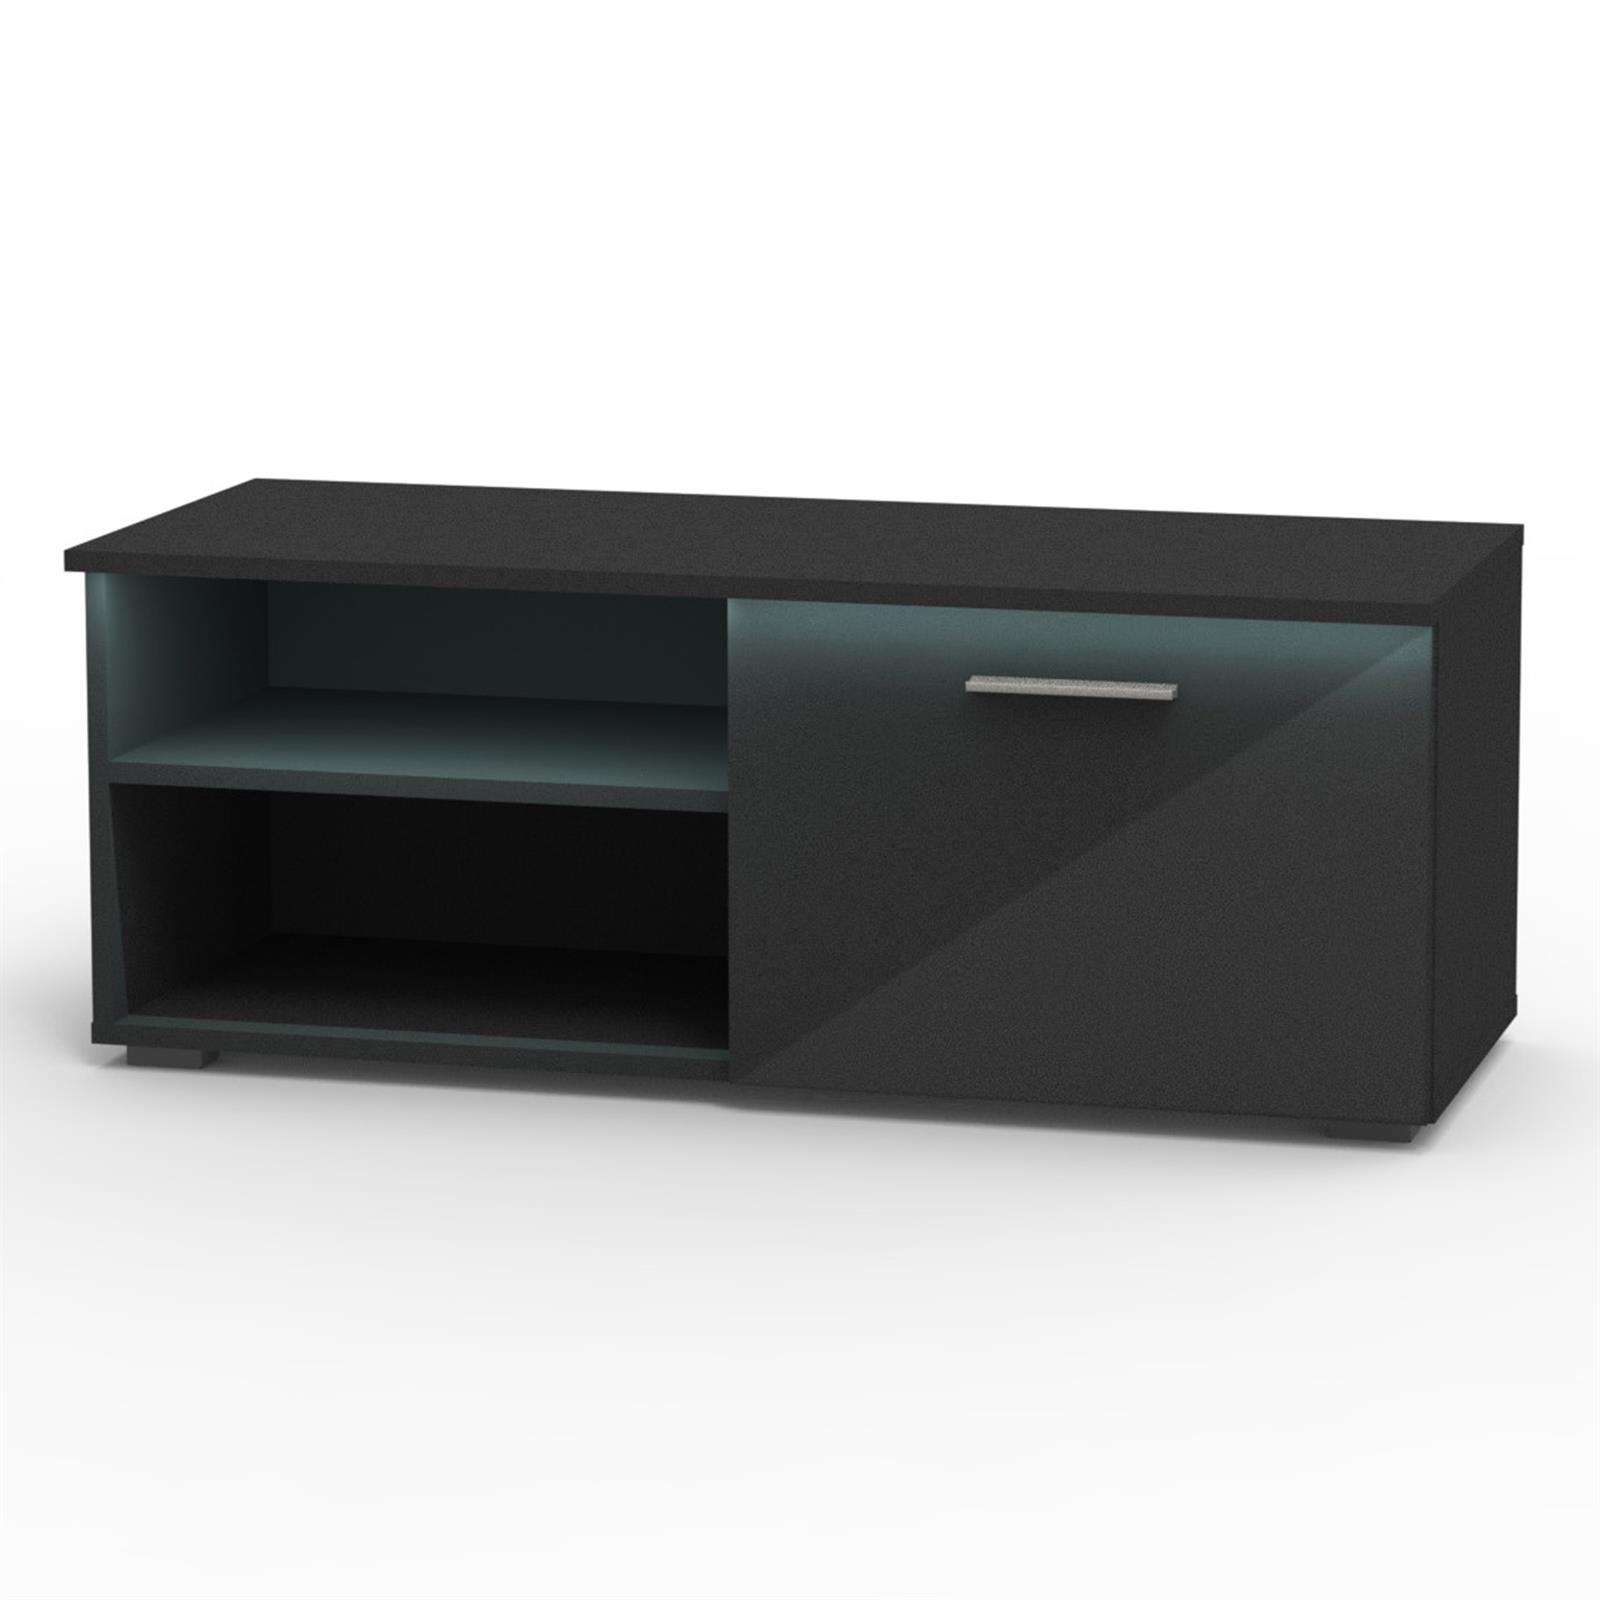 Fernseh Sideboard Tv Lowboard In Hochglanz 3 Farben Mit Led Beleuchtung